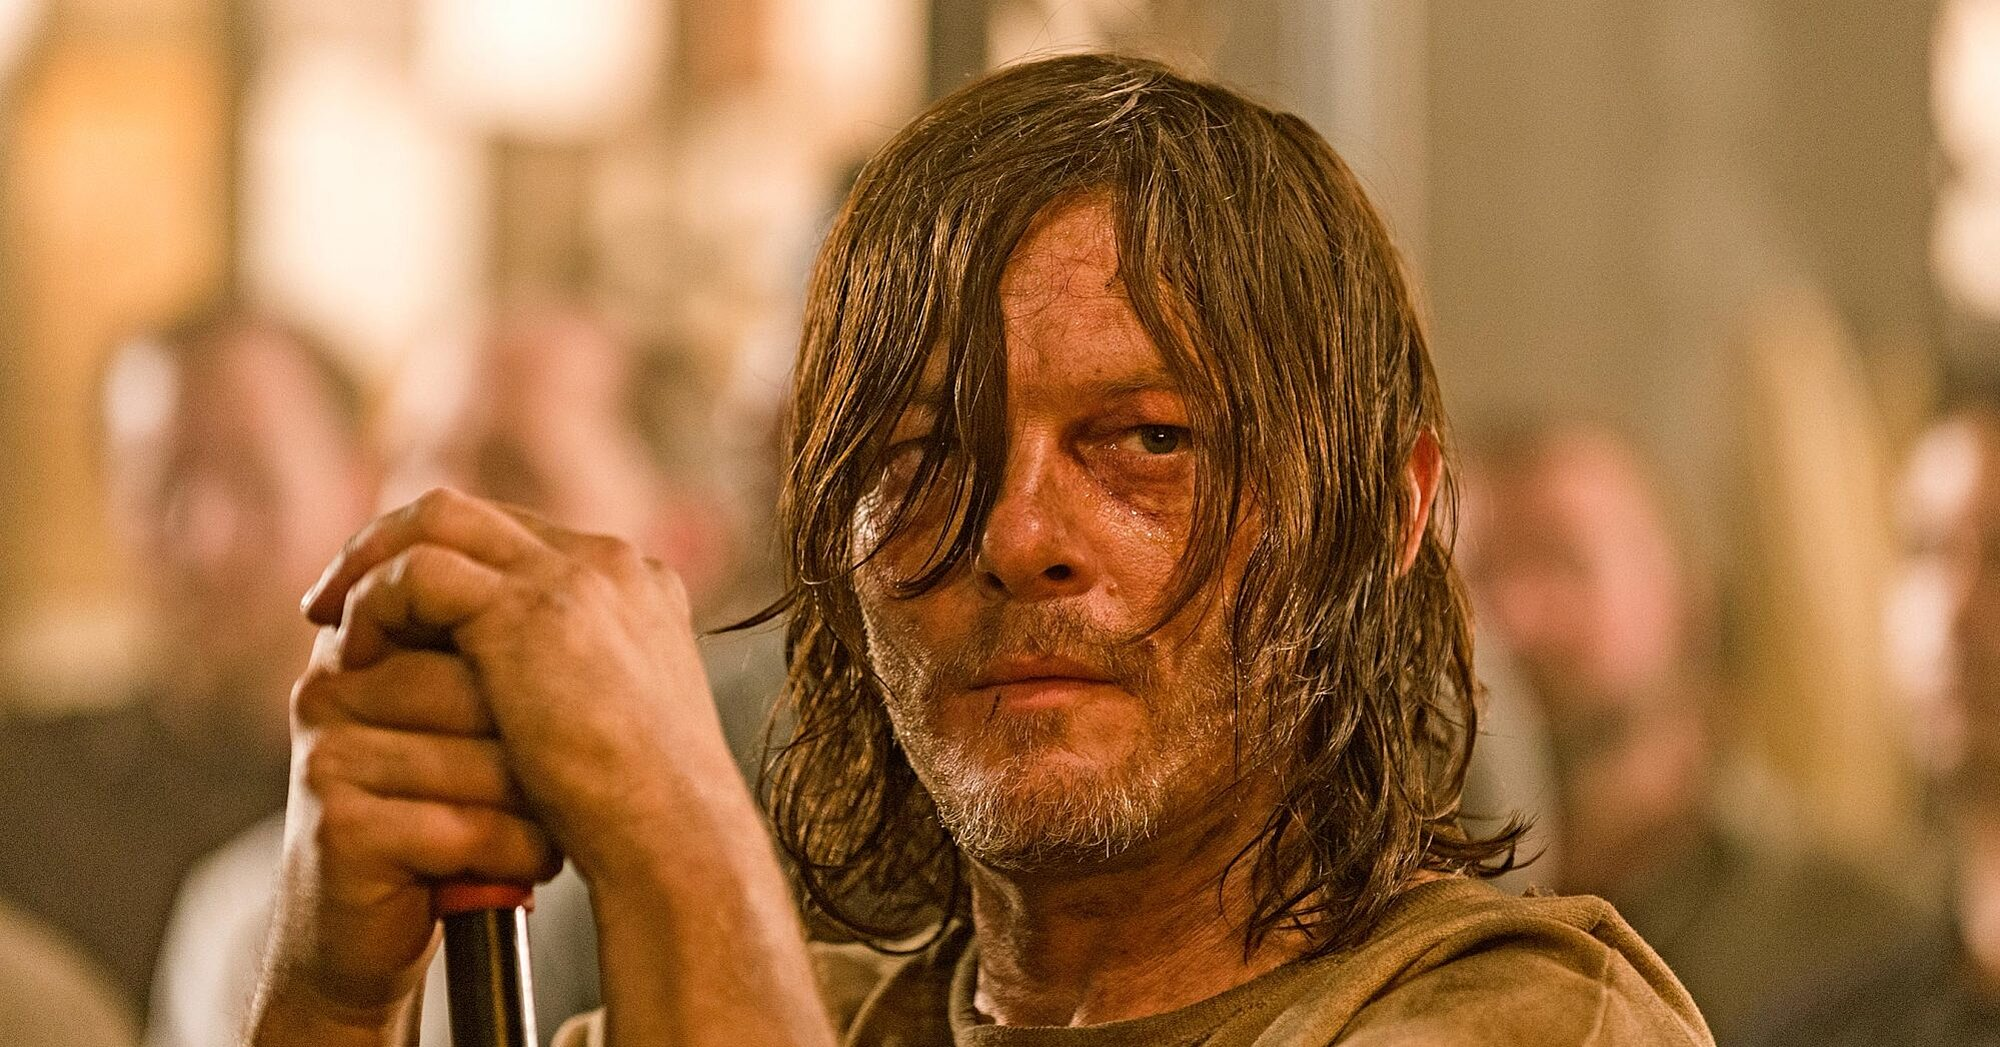 'The Walking Dead': Norman Reedus Says He Hated Filming the First Half of Season 7